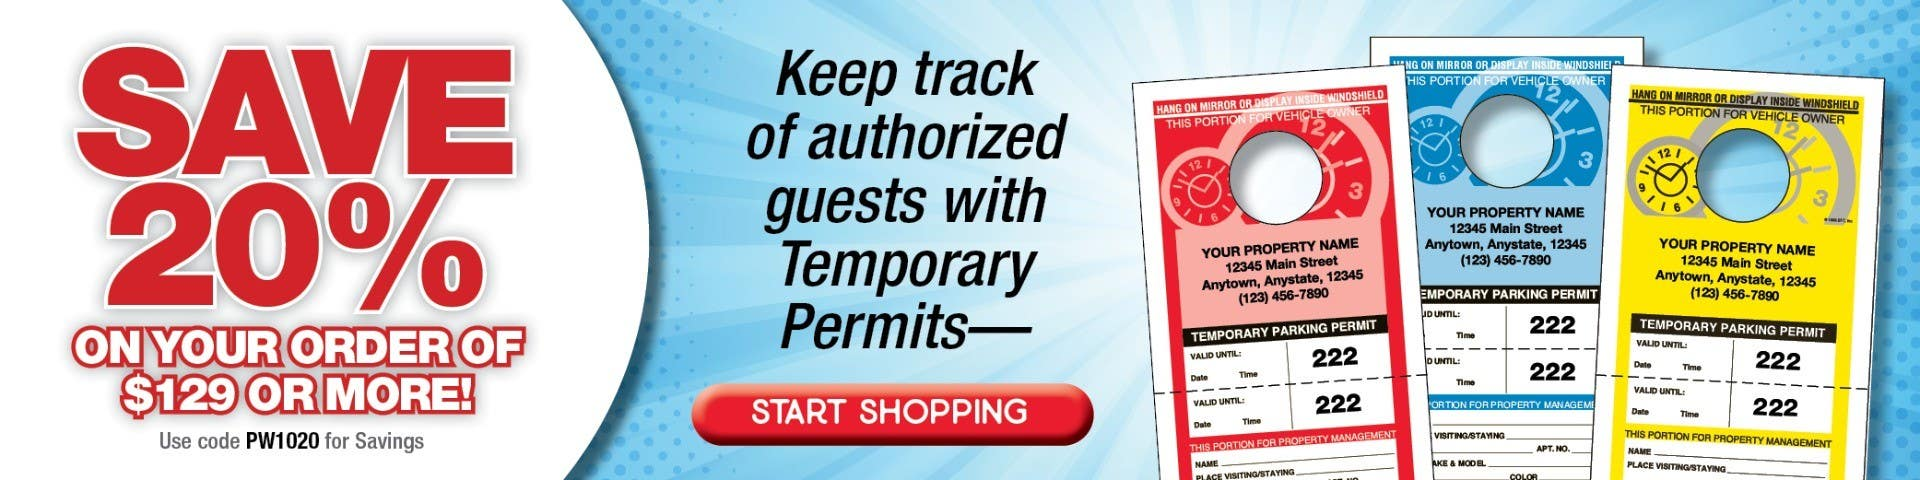 Keep track of authorized guests with Temporary Permits